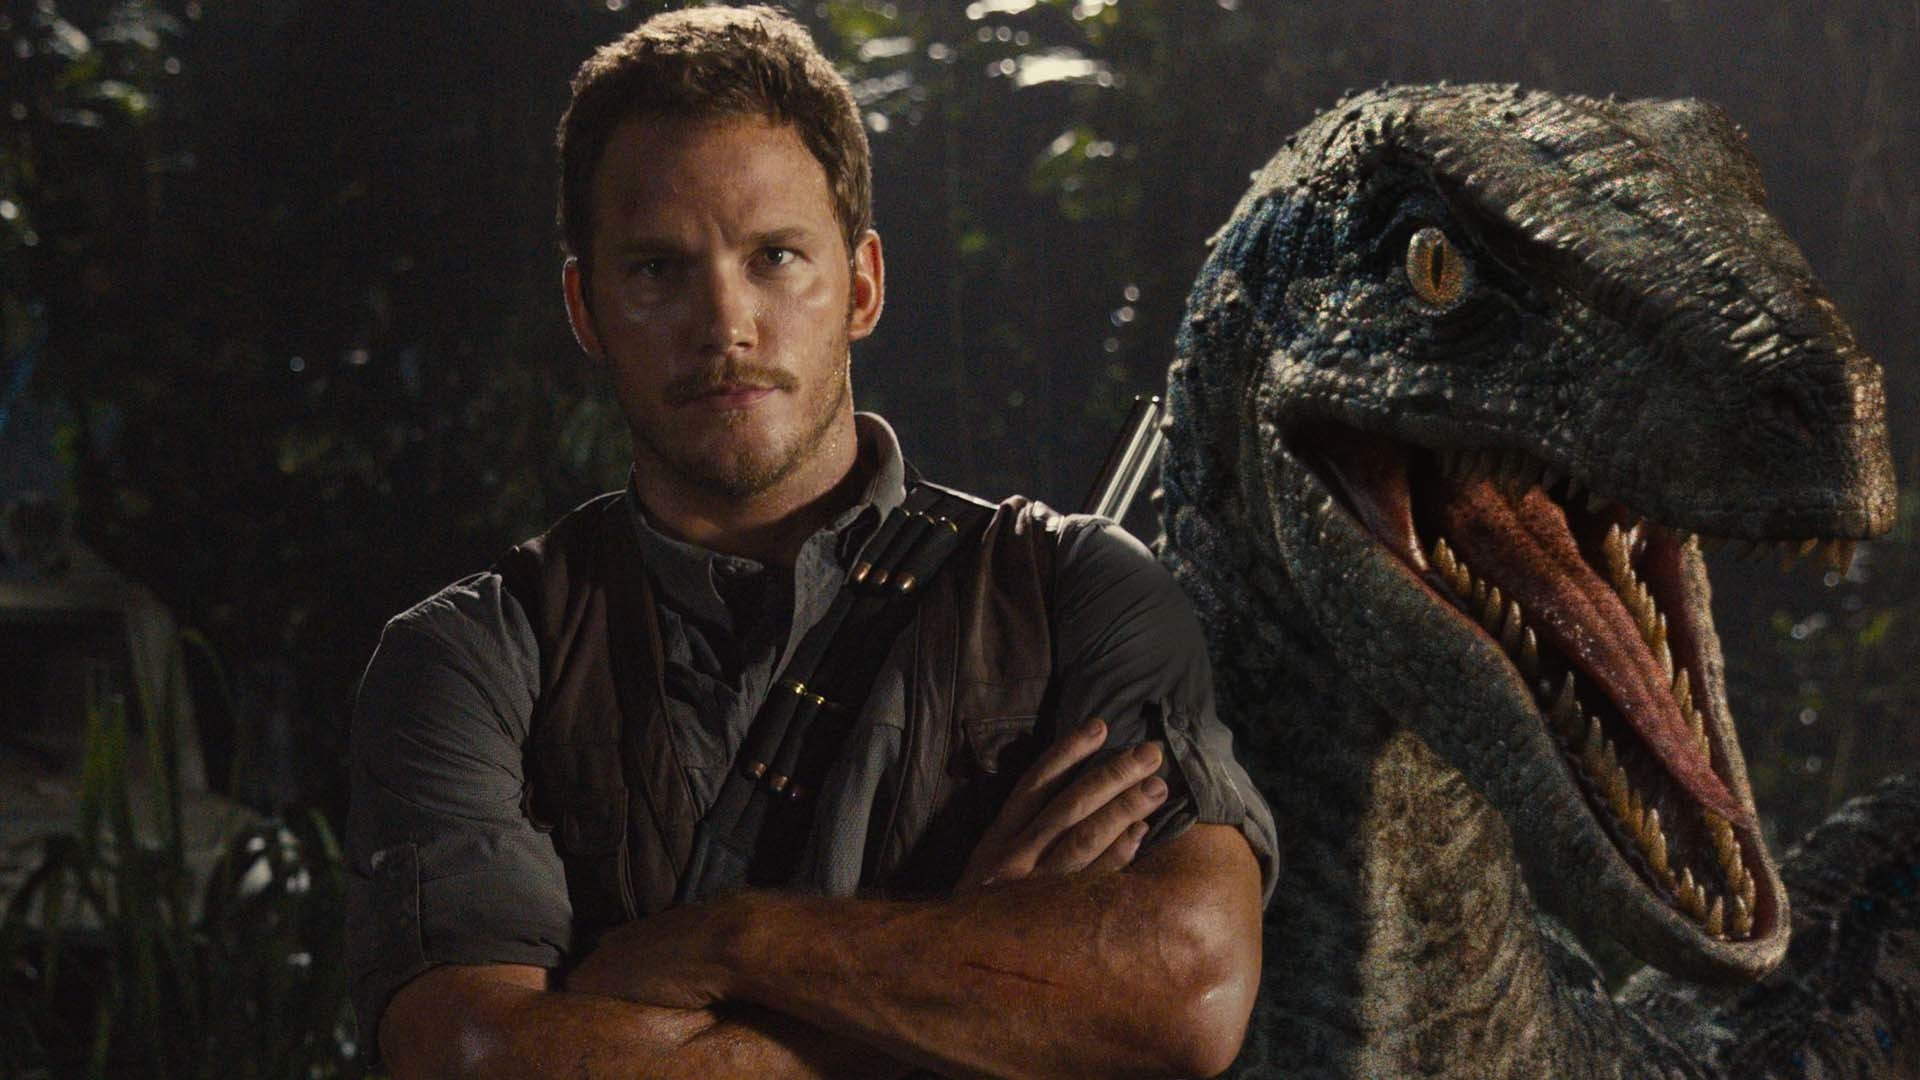 We now know Jurassic World will be a trilogy in the spirit of the Steven Spielberg originals